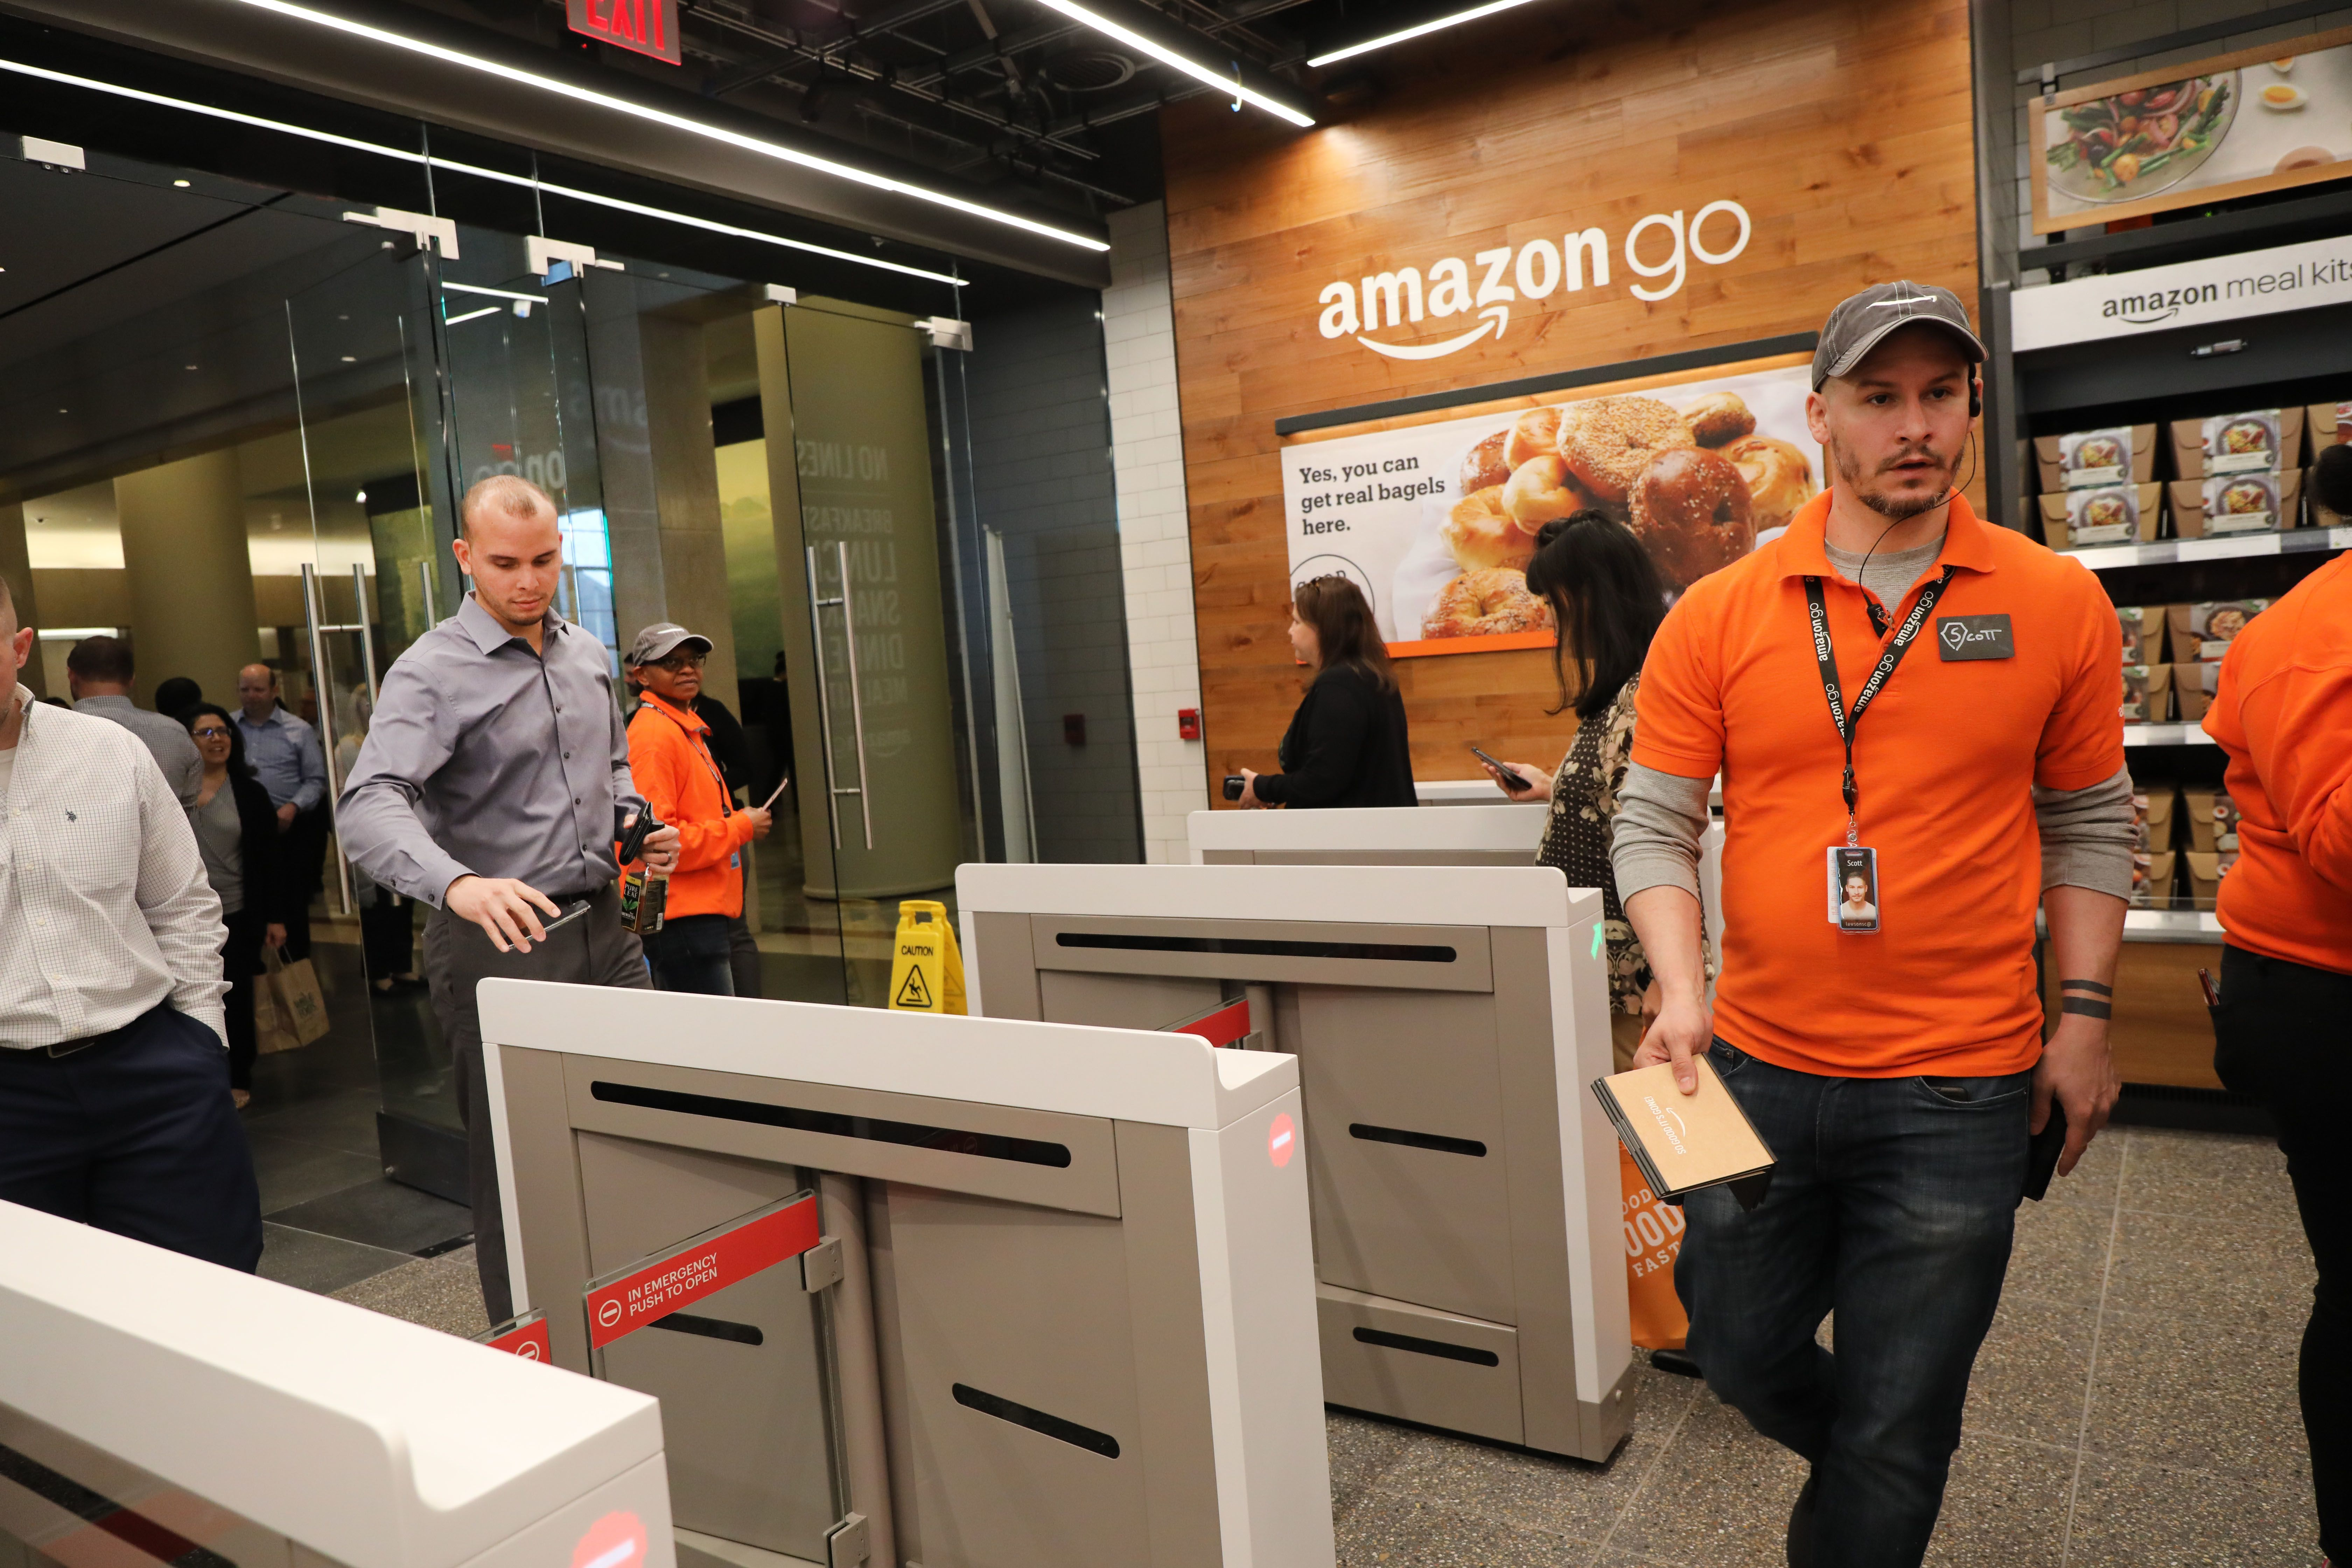 Amazon comes to New York with another one of its cashier-free stores